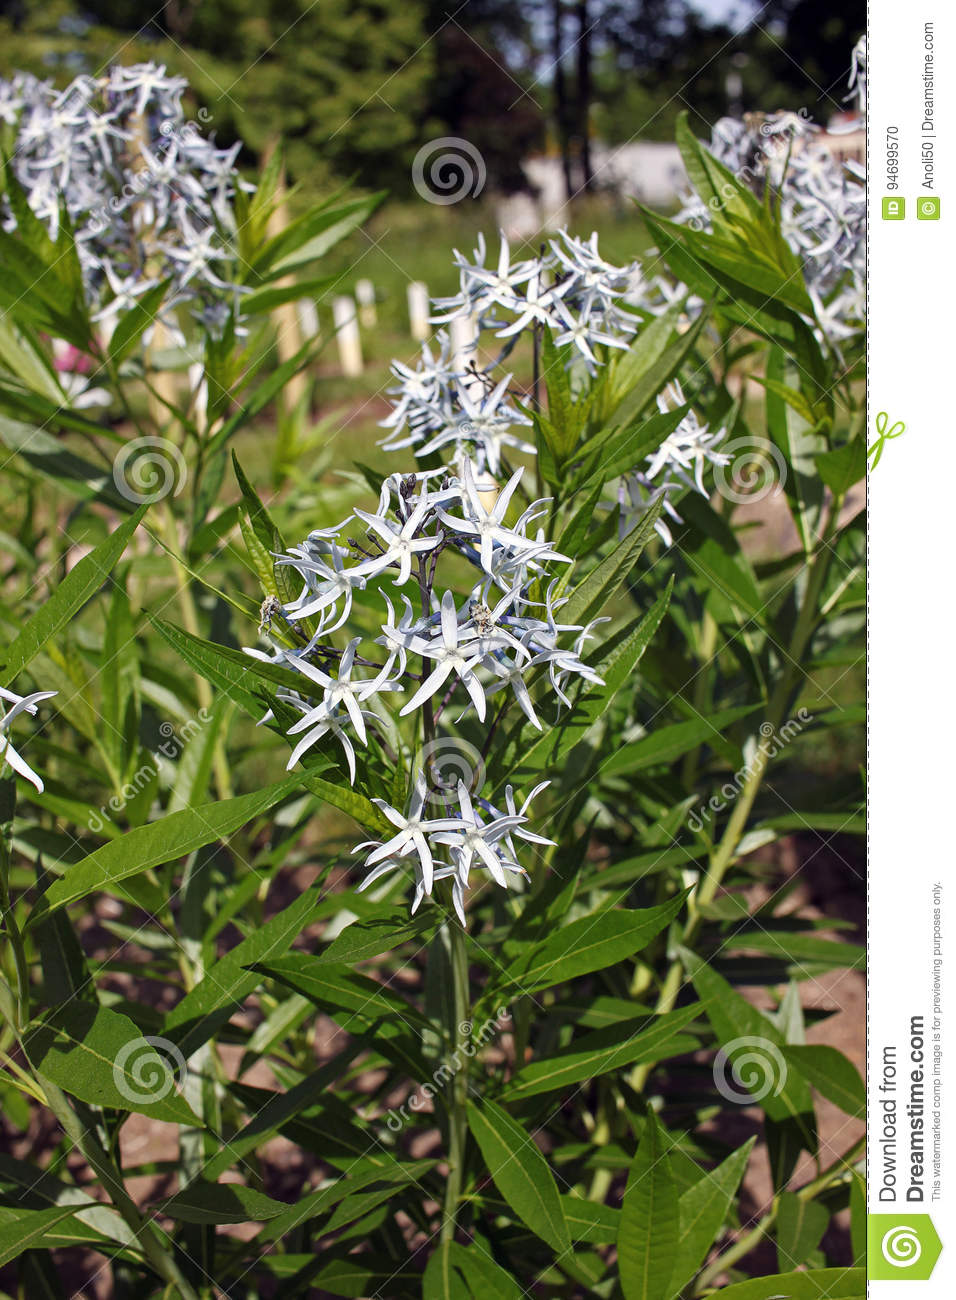 Amsonia Tabernaemontana Flowers Stock Photo Image Of Blue Botanic